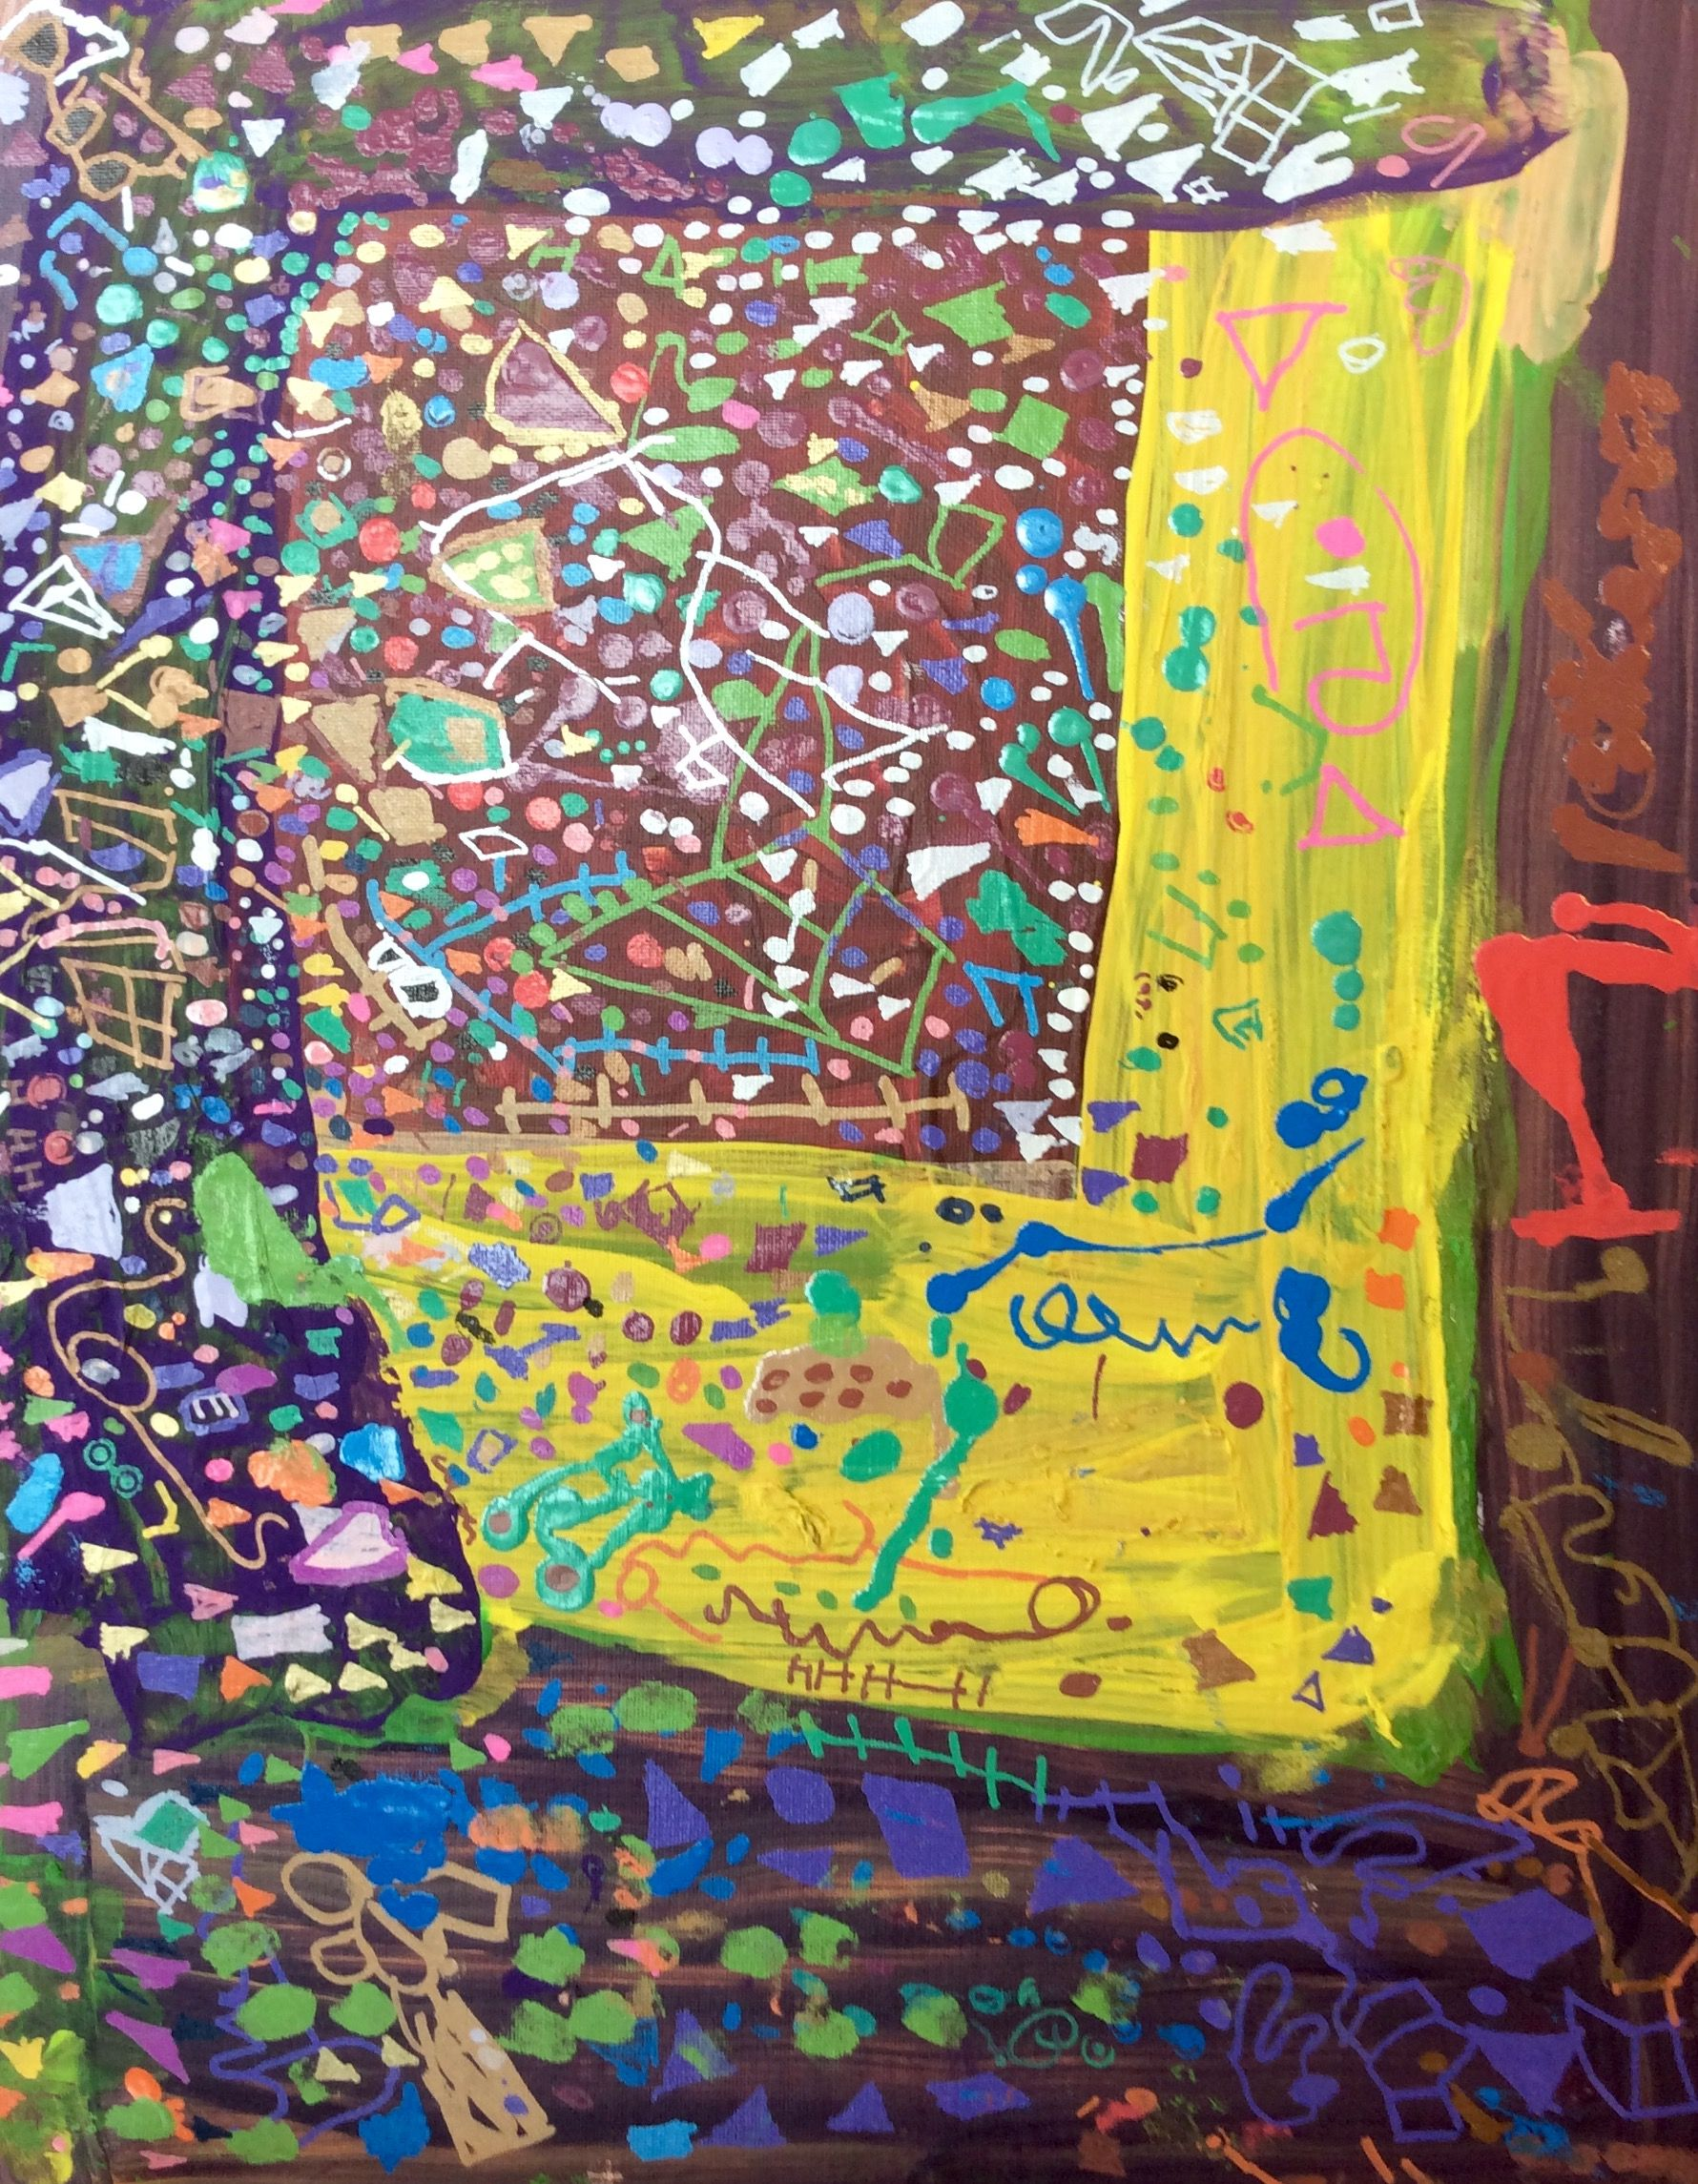 """Spire artist Kevin Richardson. Acrylic on canvas board.  16x20"""". (#439) """"Party Pieces"""". $34.86. Visit our website to learn more about our program or how to purchase art.  http://www.mcbdds.org/419/Spire-Arts"""